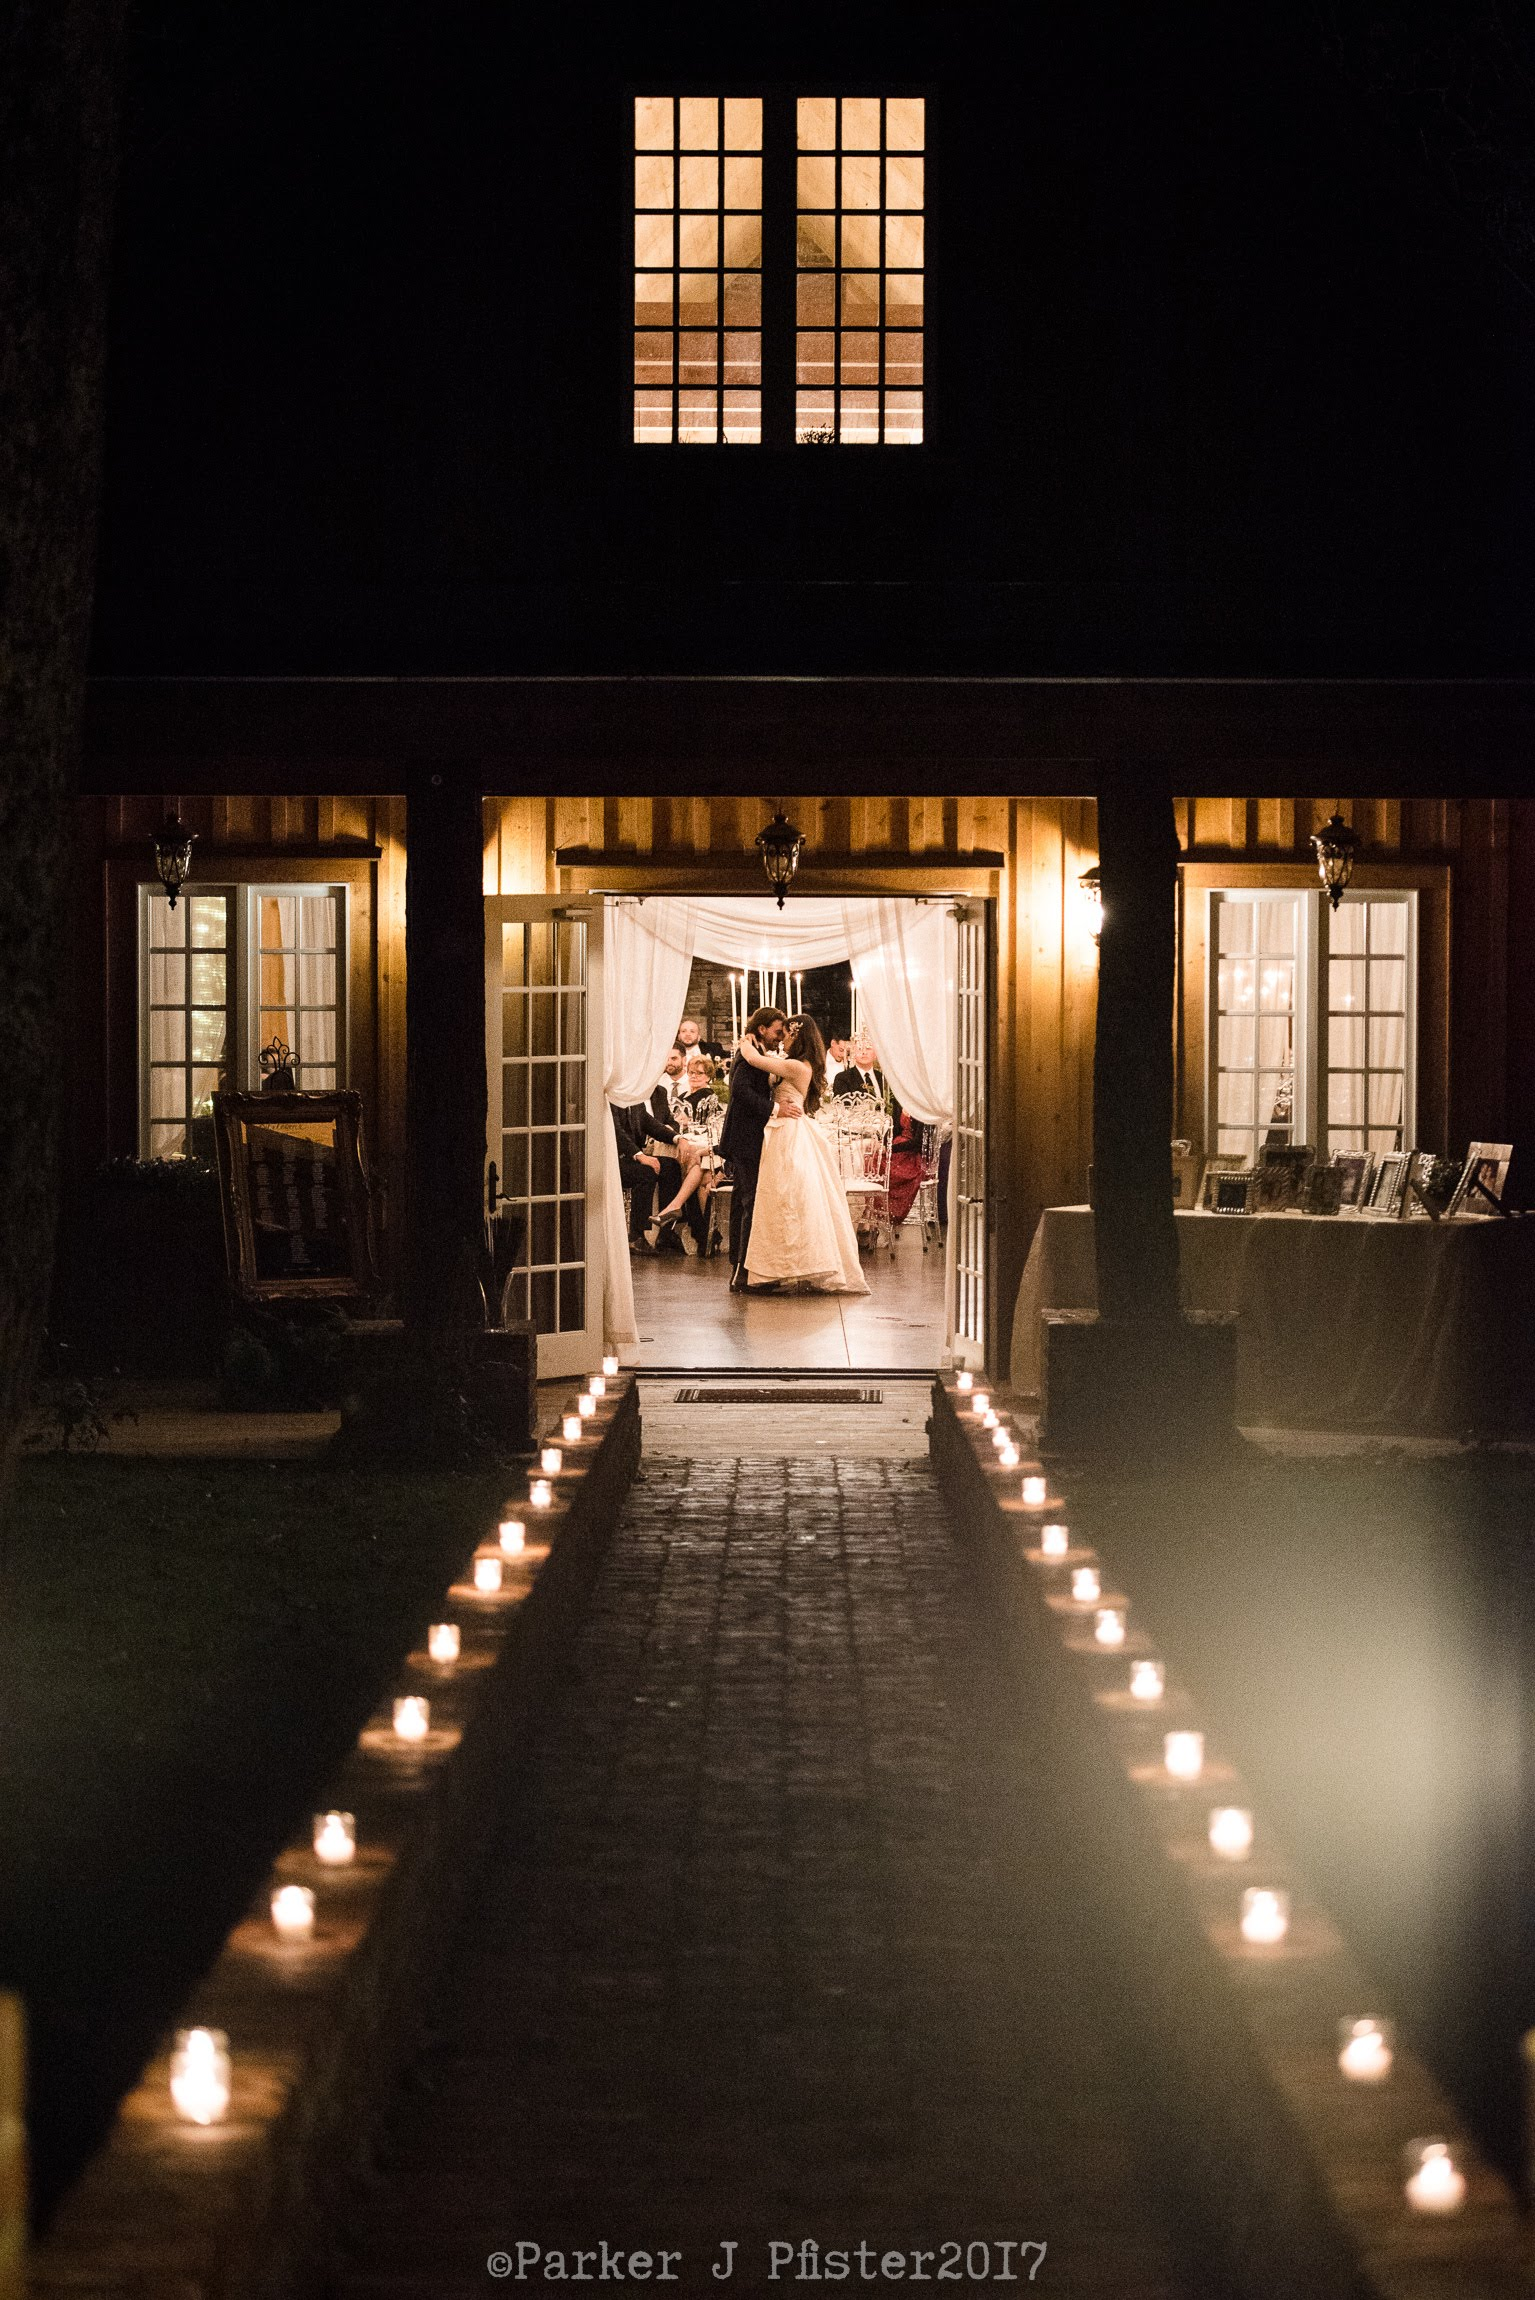 Bride and groom dancing in the reception hall, illuminated by candlelights